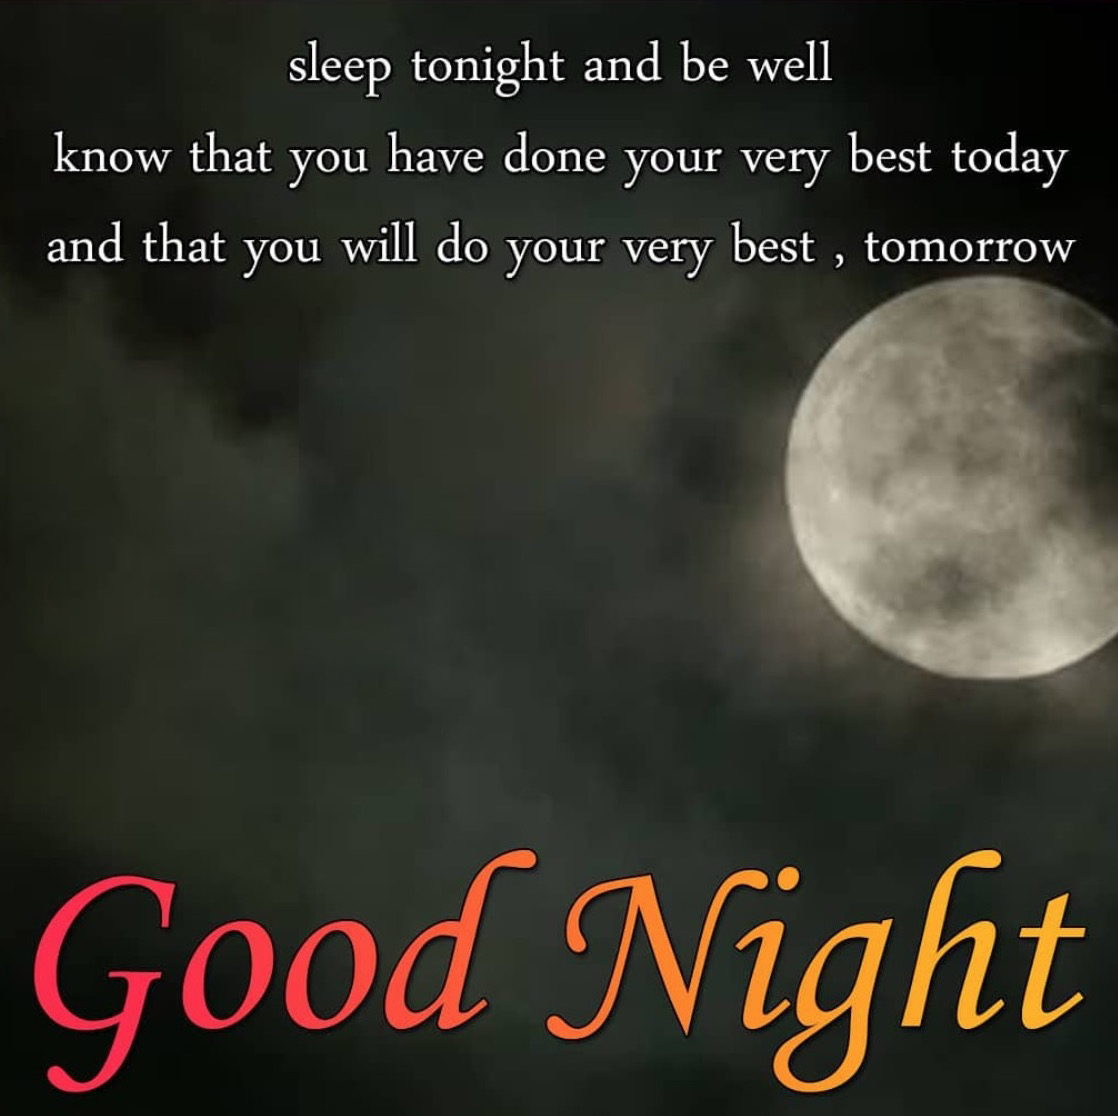 Sleep Tonight And Be Well